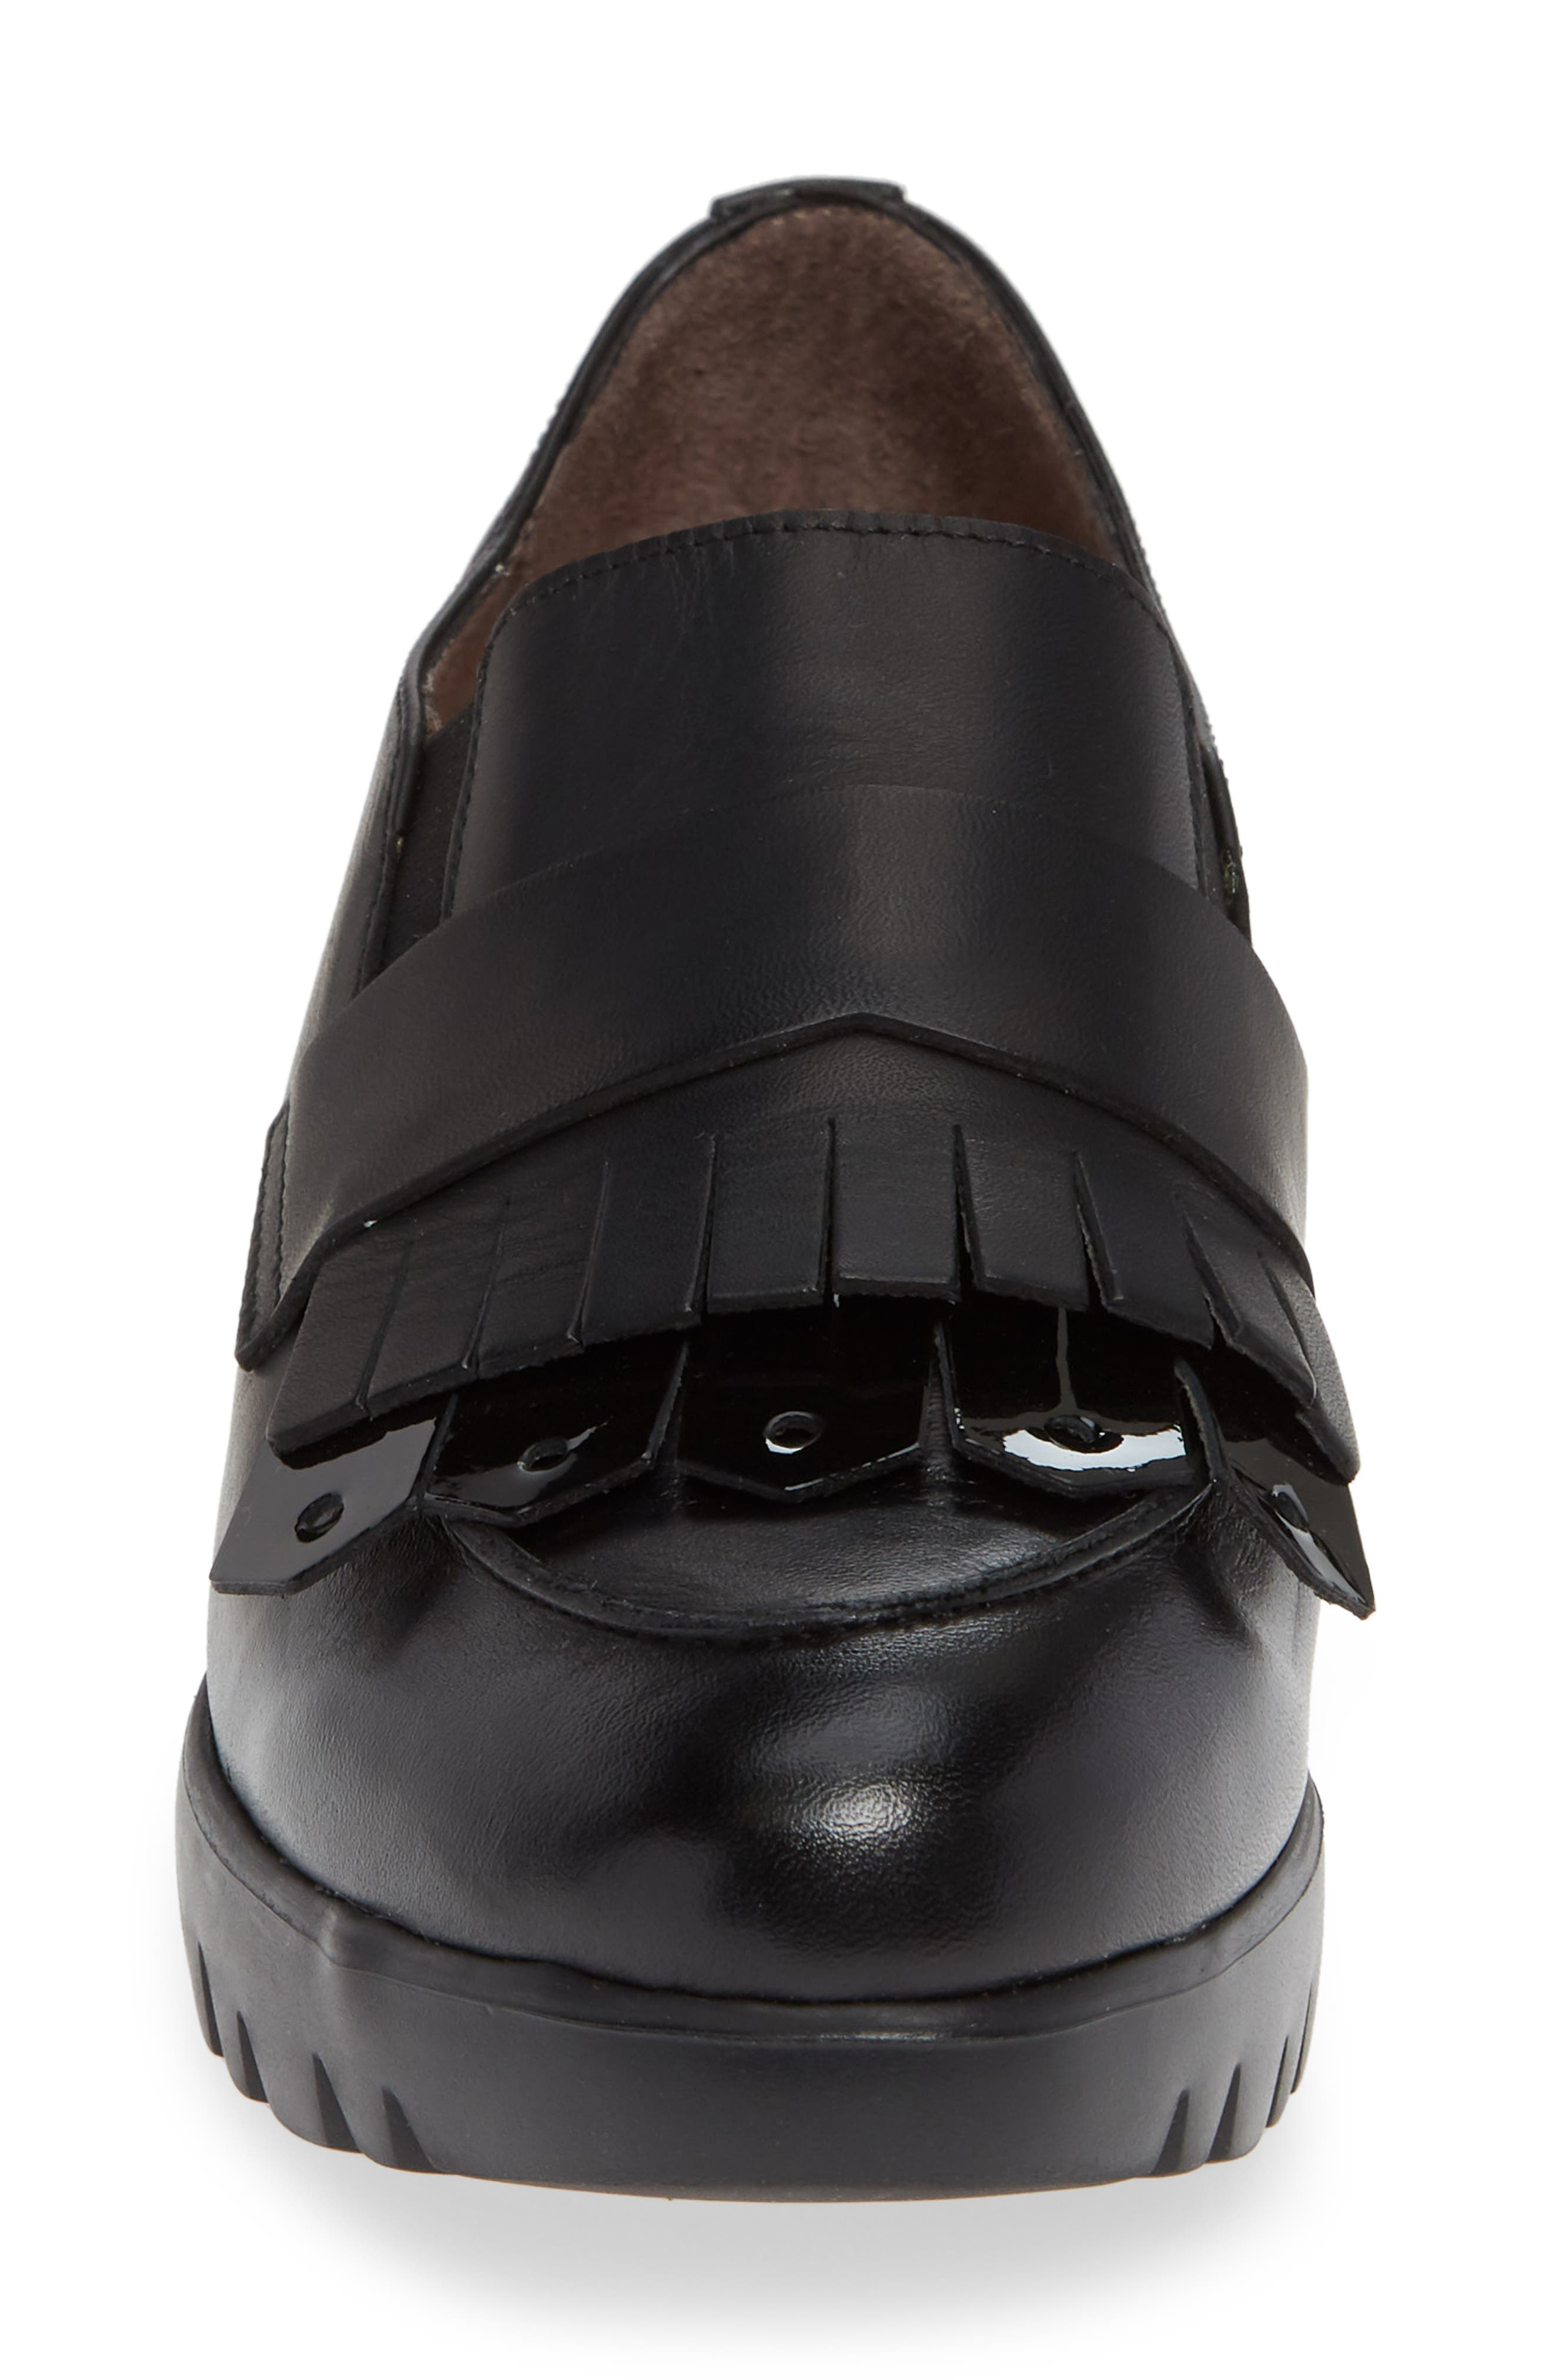 Kiltie Wedge Loafer,                             Alternate thumbnail 4, color,                             BLACK PATENT AND LEATHER